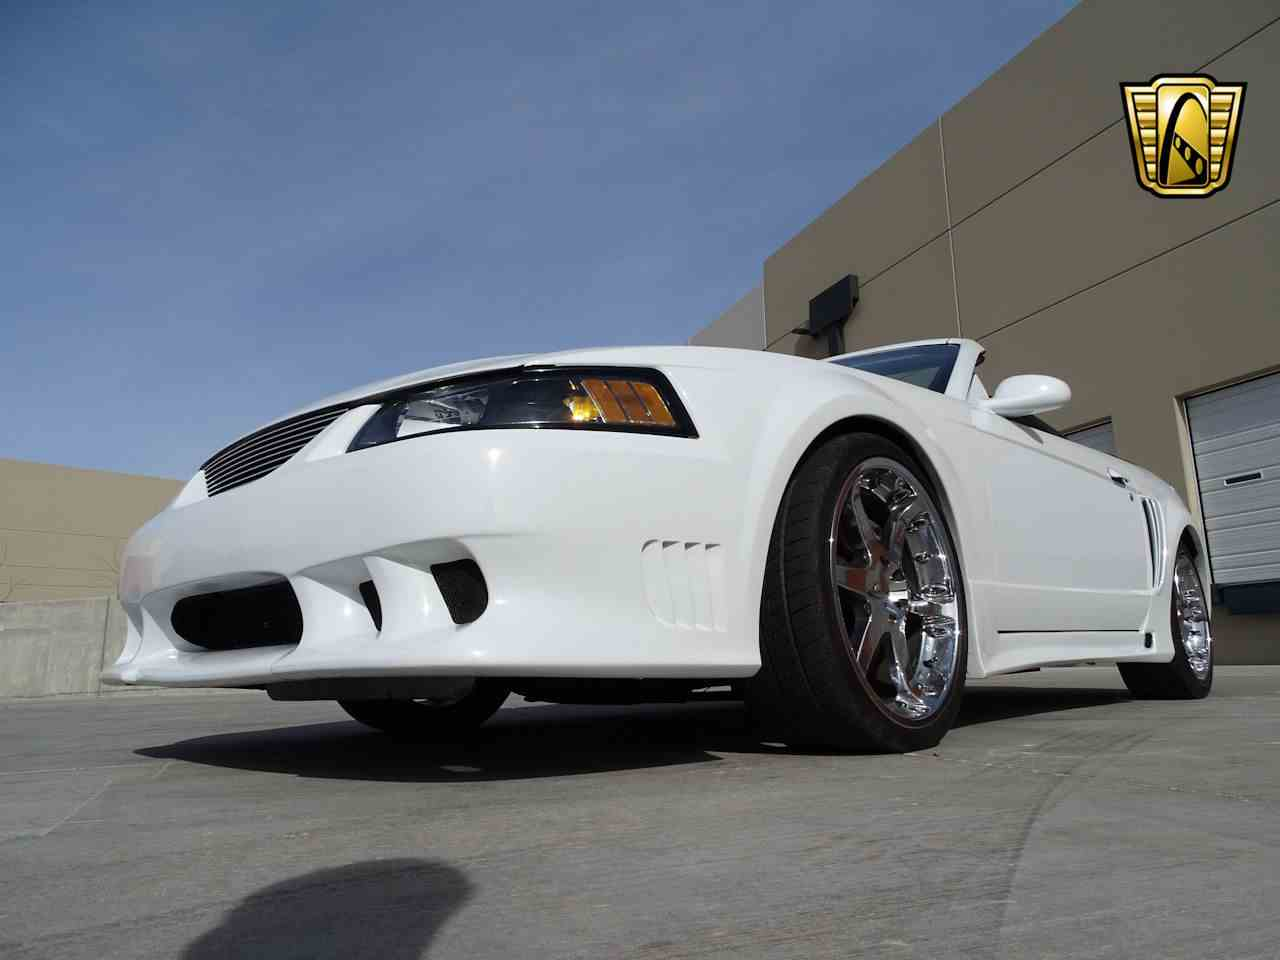 Large Picture of 2002 Ford Mustang located in Deer Valley Arizona - $34,995.00 - MZG0